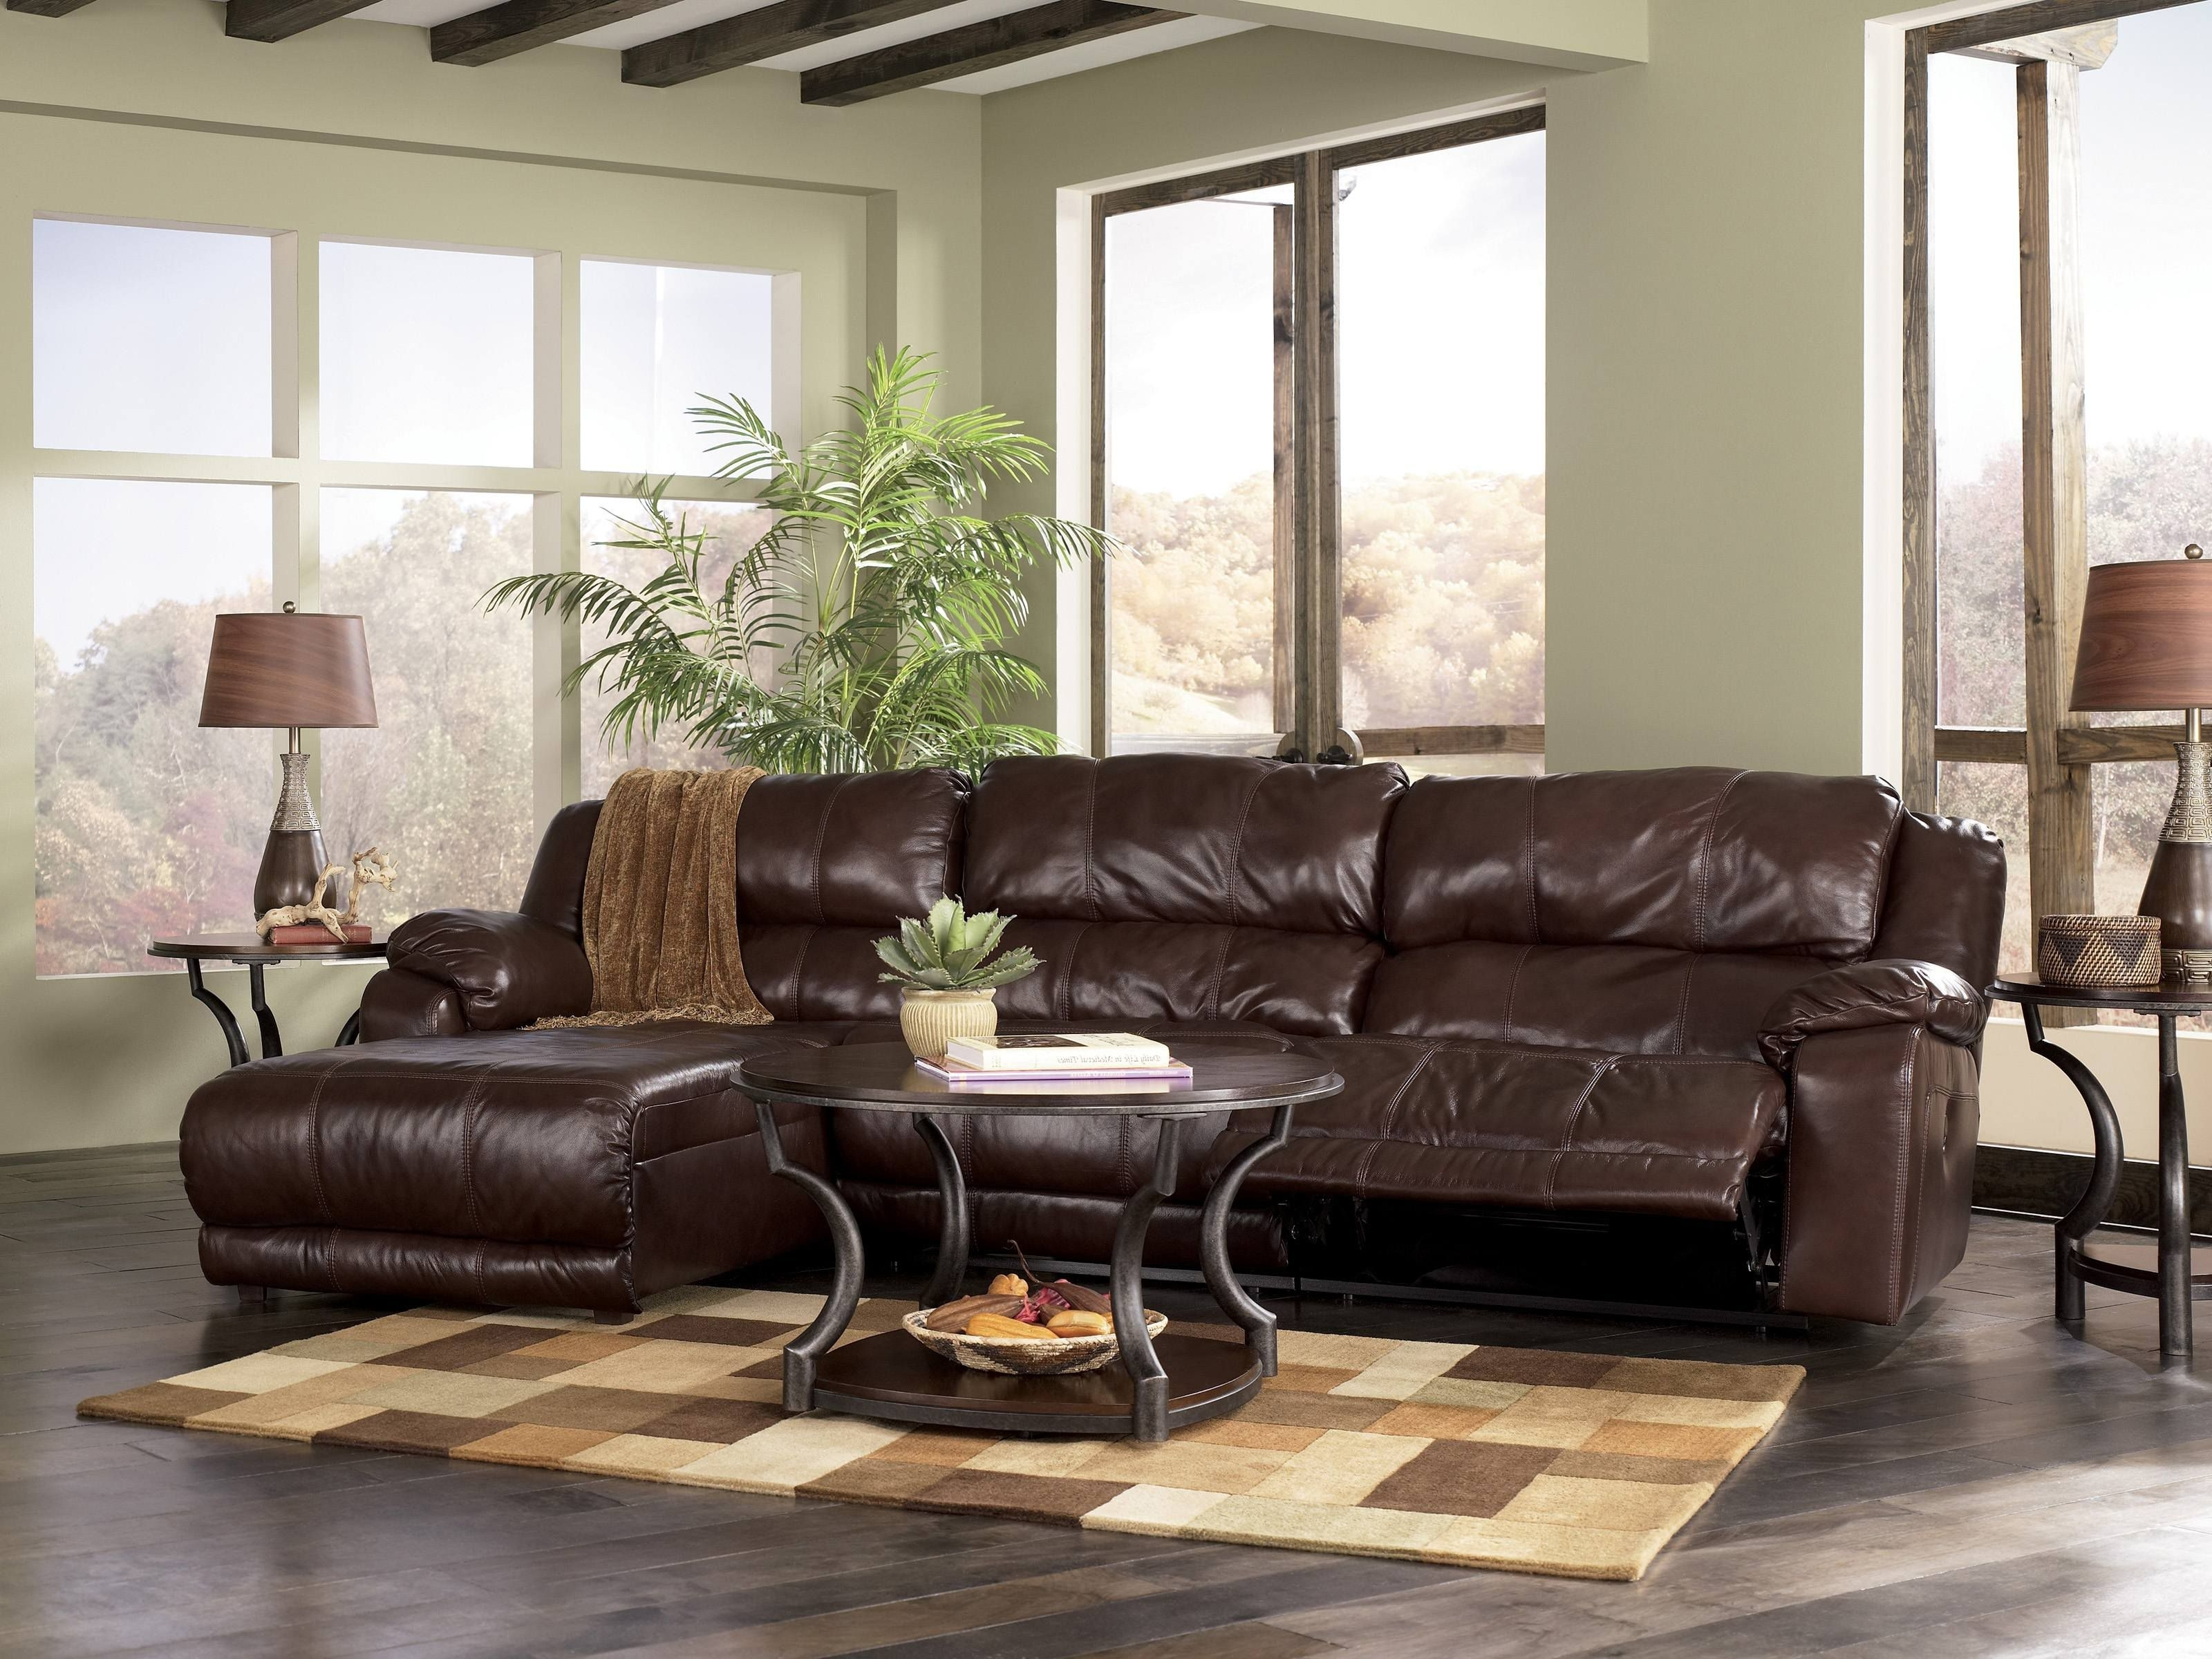 Sectional Sofas With Recliners (View 11 of 15)